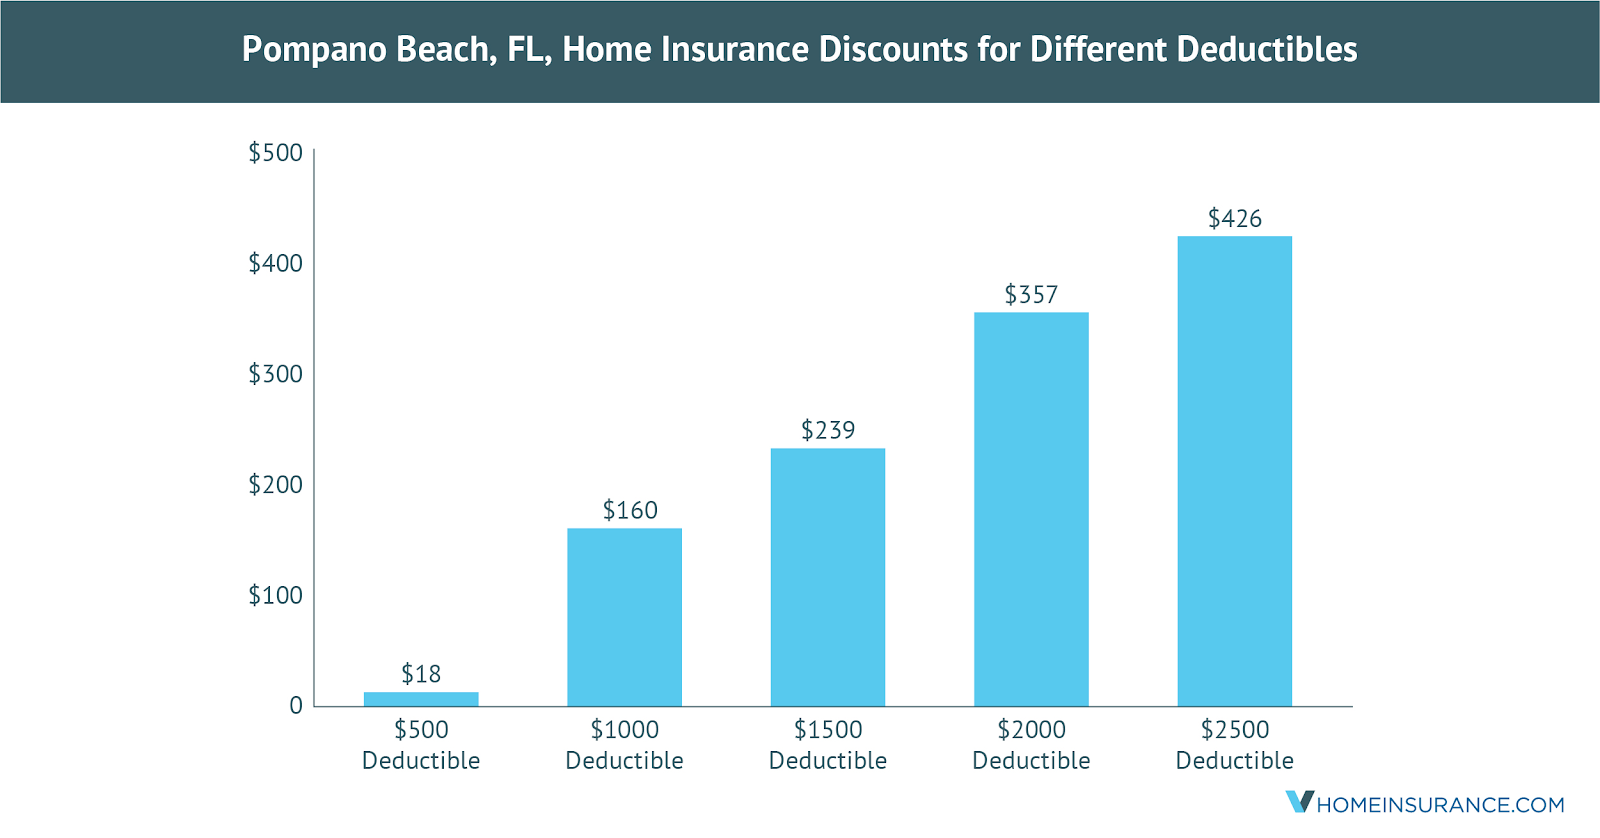 Pompano_Beach_FL_Discounts_on_Homeowners_Insurance